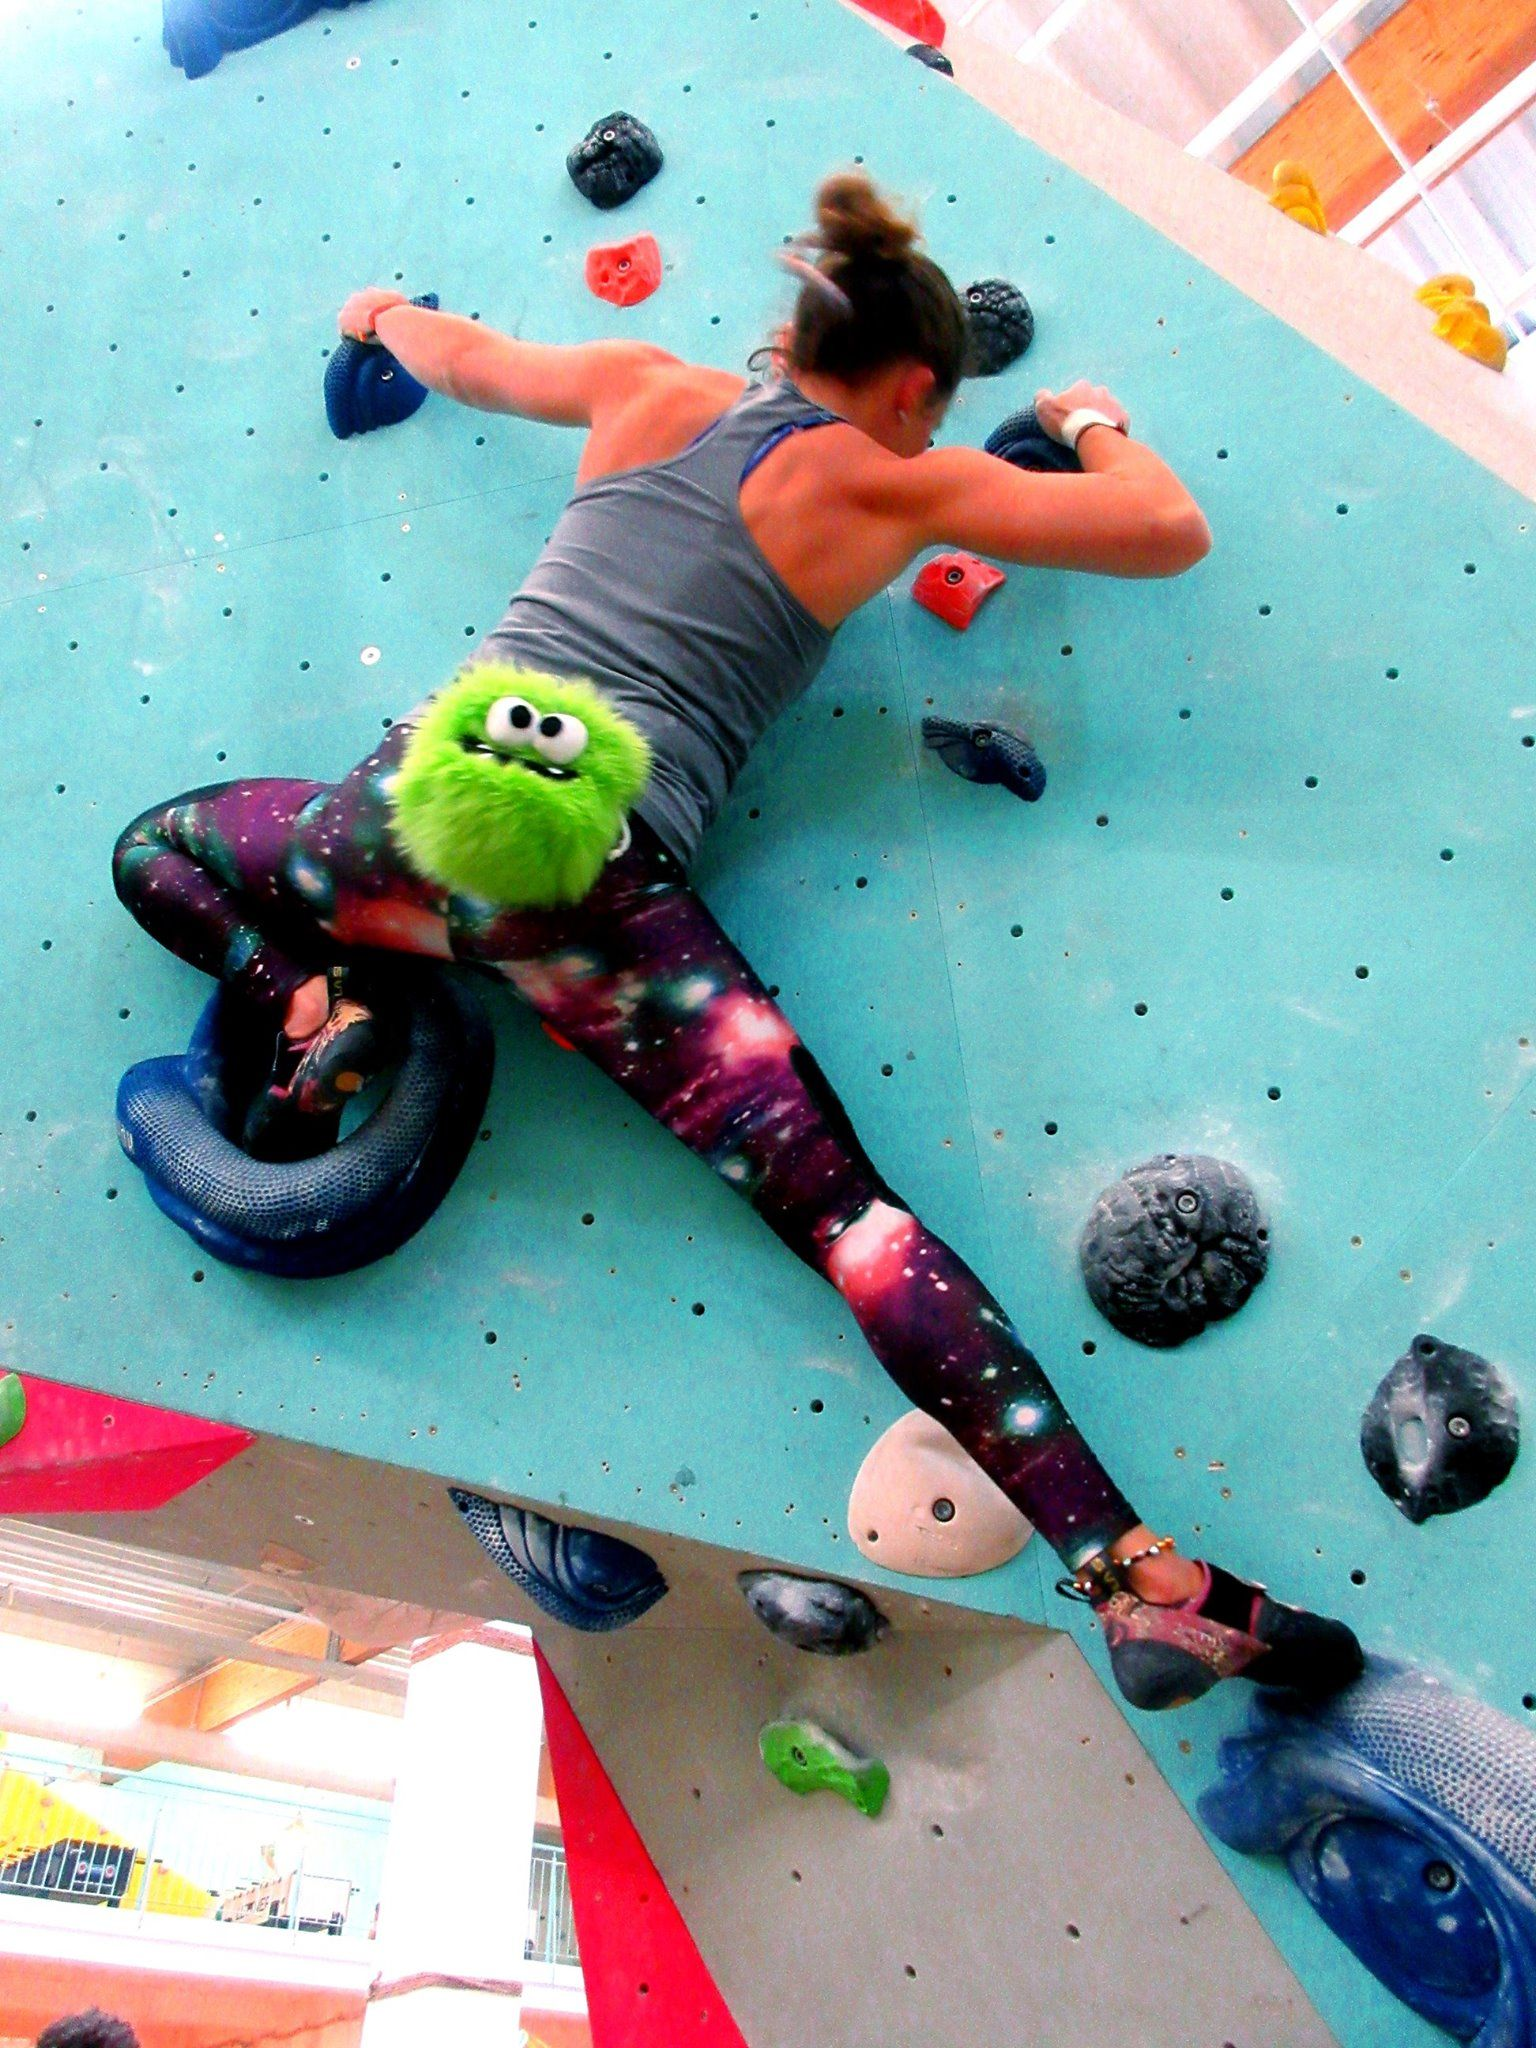 daniela schmidt climbing with green five toothed monster funny rock